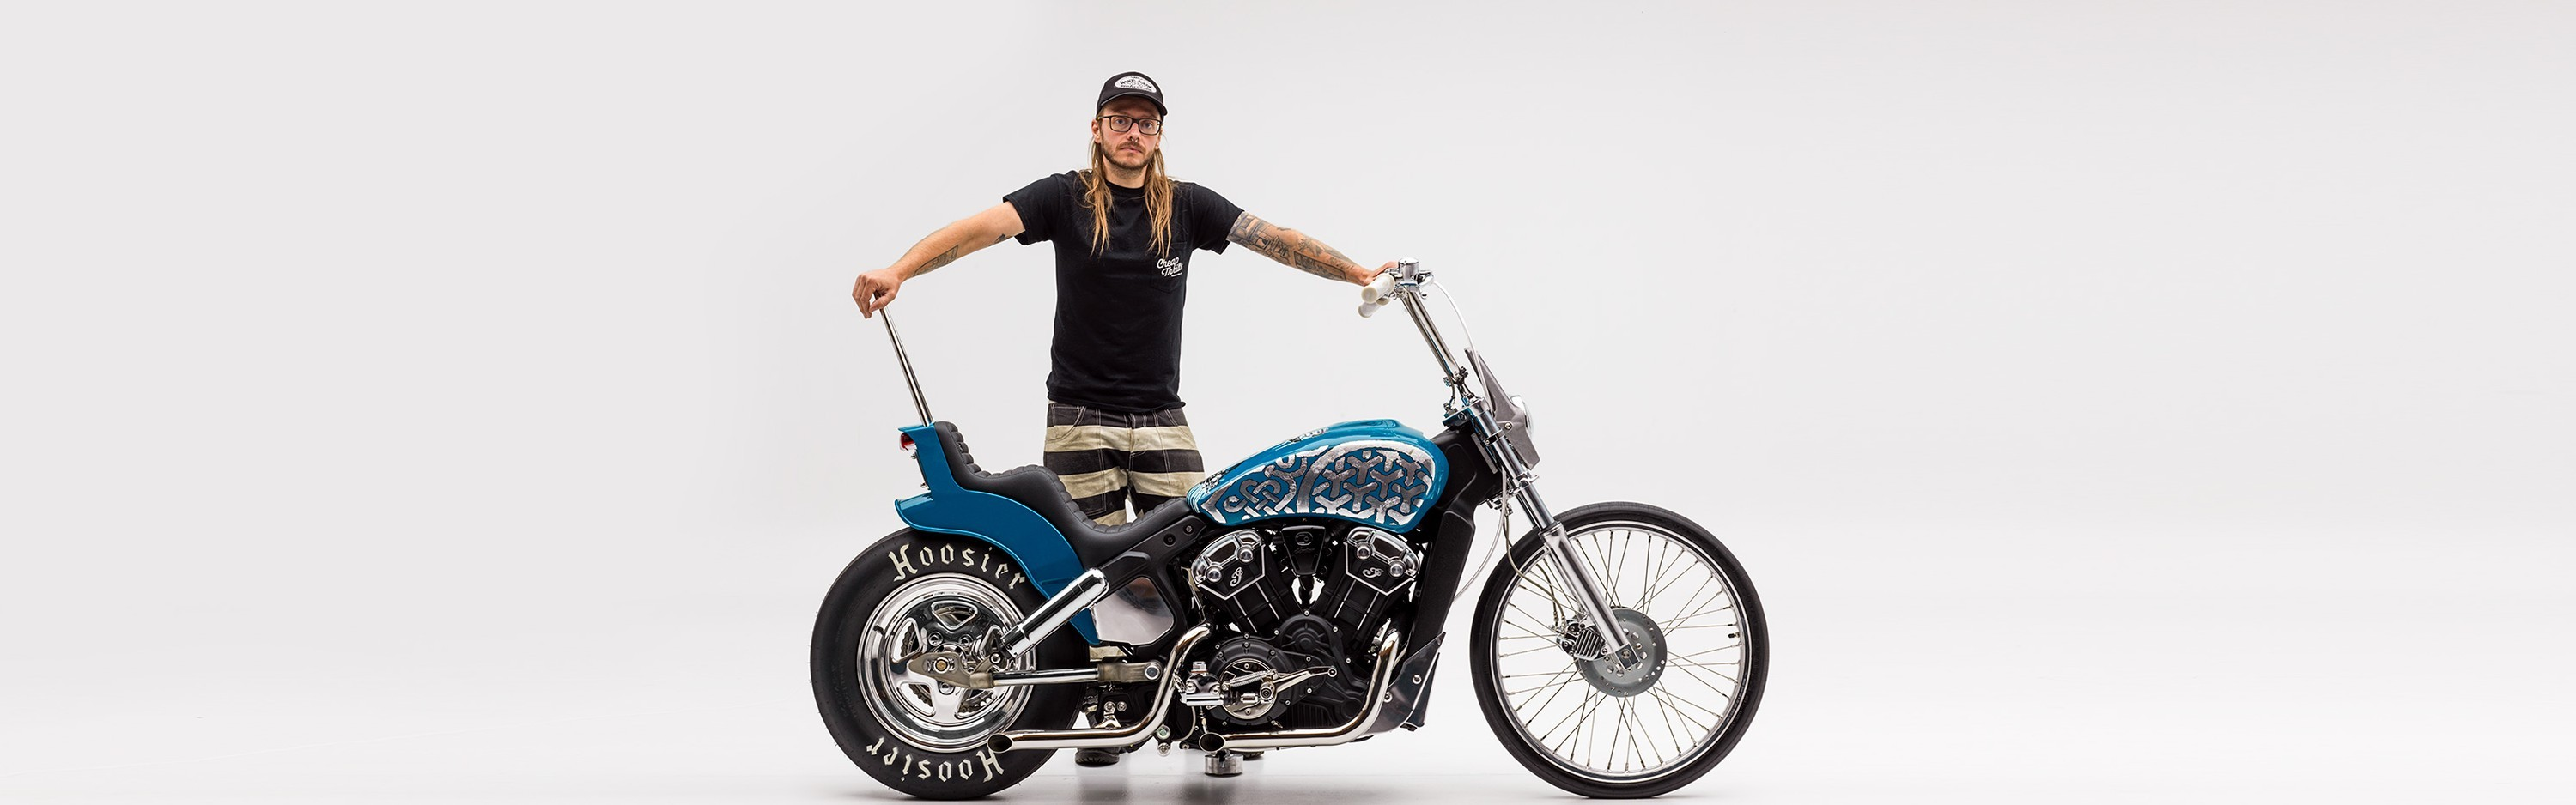 indian-motorcycle-the-wrench-scout-bobber-build-off-11